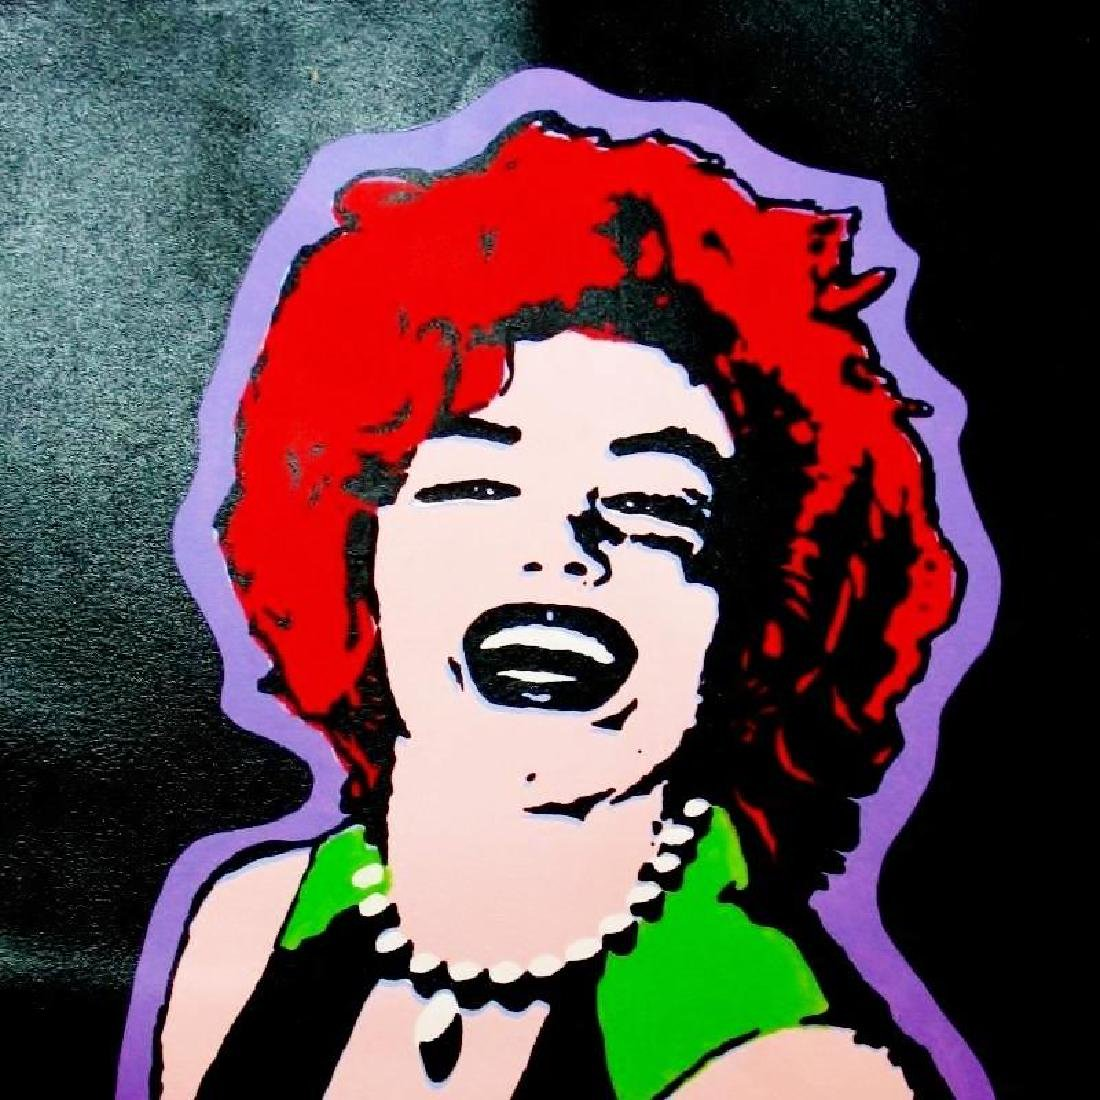 DRAMATIC COLORFUL POP STYLE MARILYN MONROE PAINTING - 3